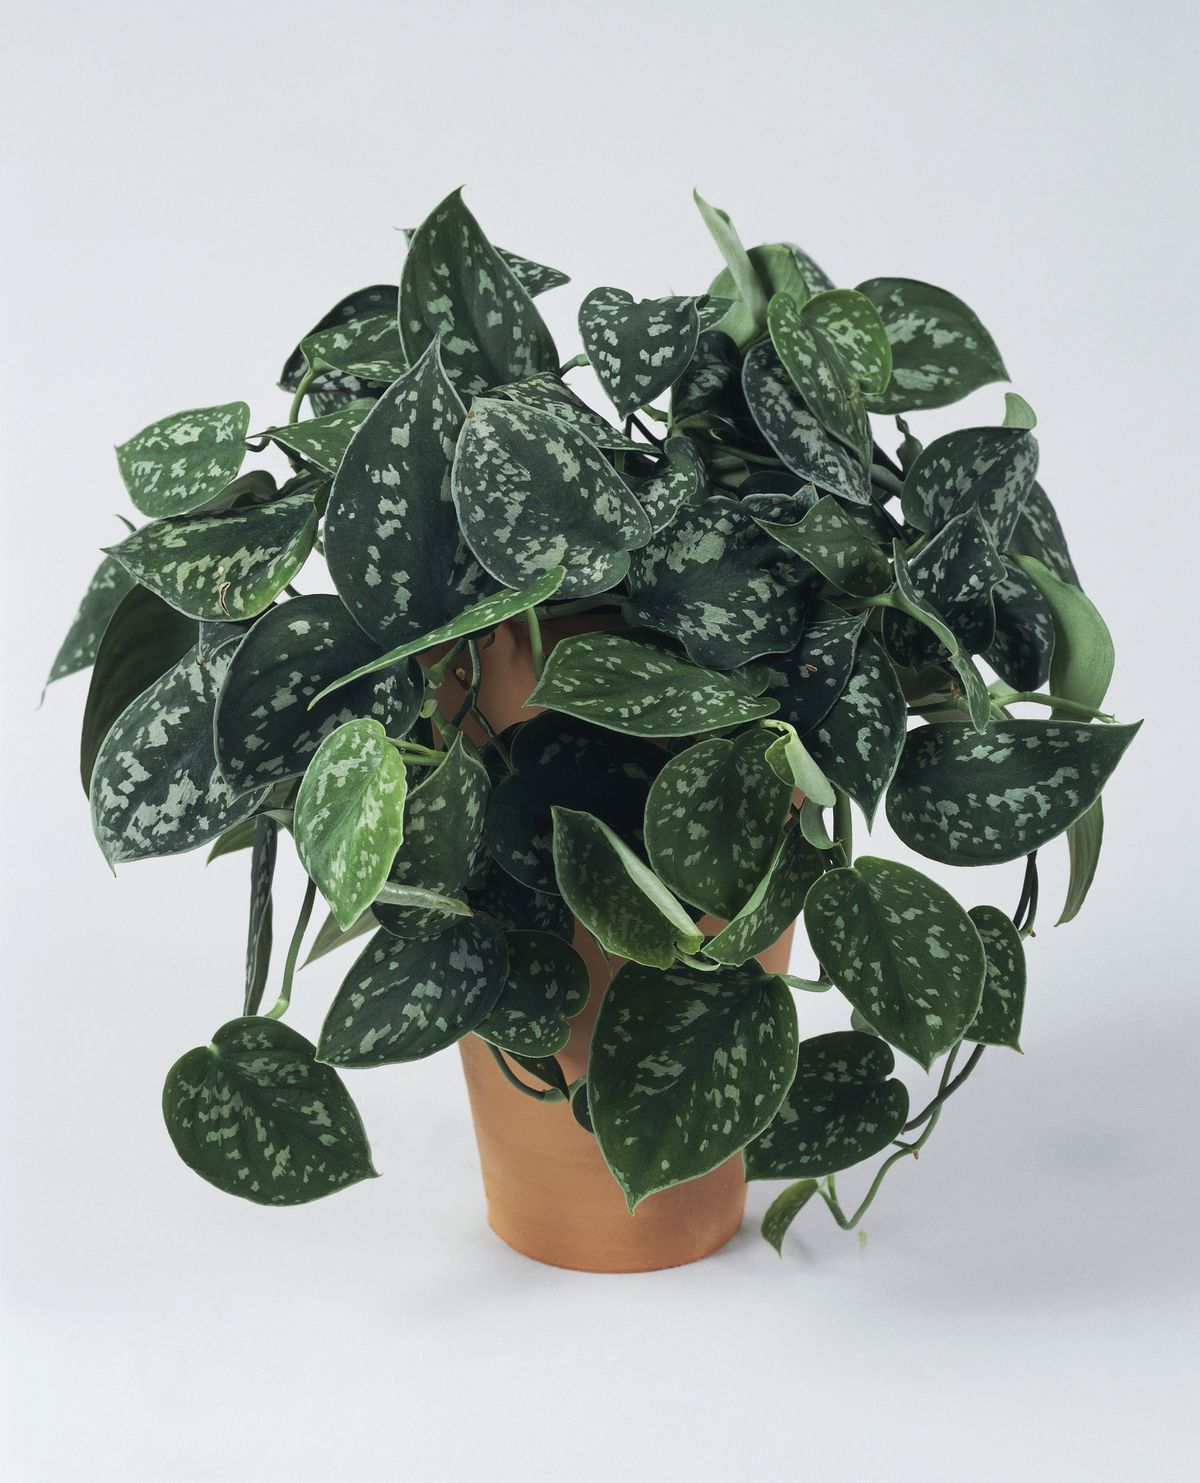 Satin pothos or Silver philodendron, Araceae.